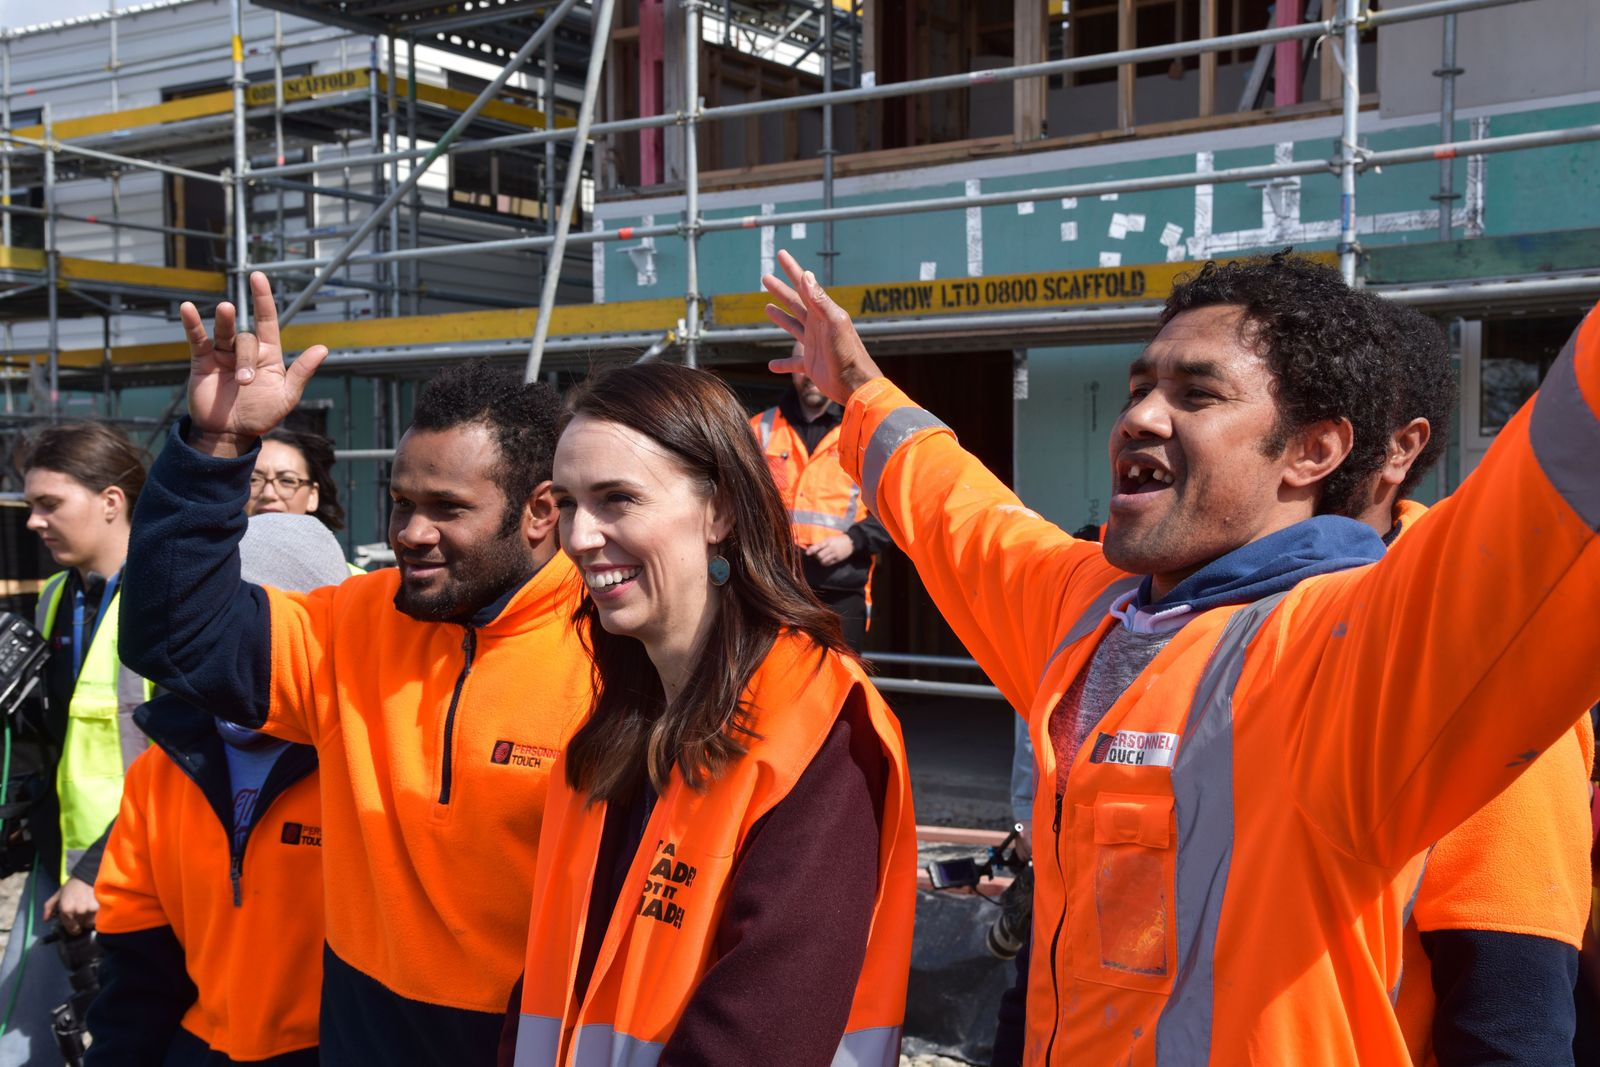 New Zealand Prime Minister Jacinda Ardern campaigns ahead of election, Palmerston North, Australia - 17 Sep 2020